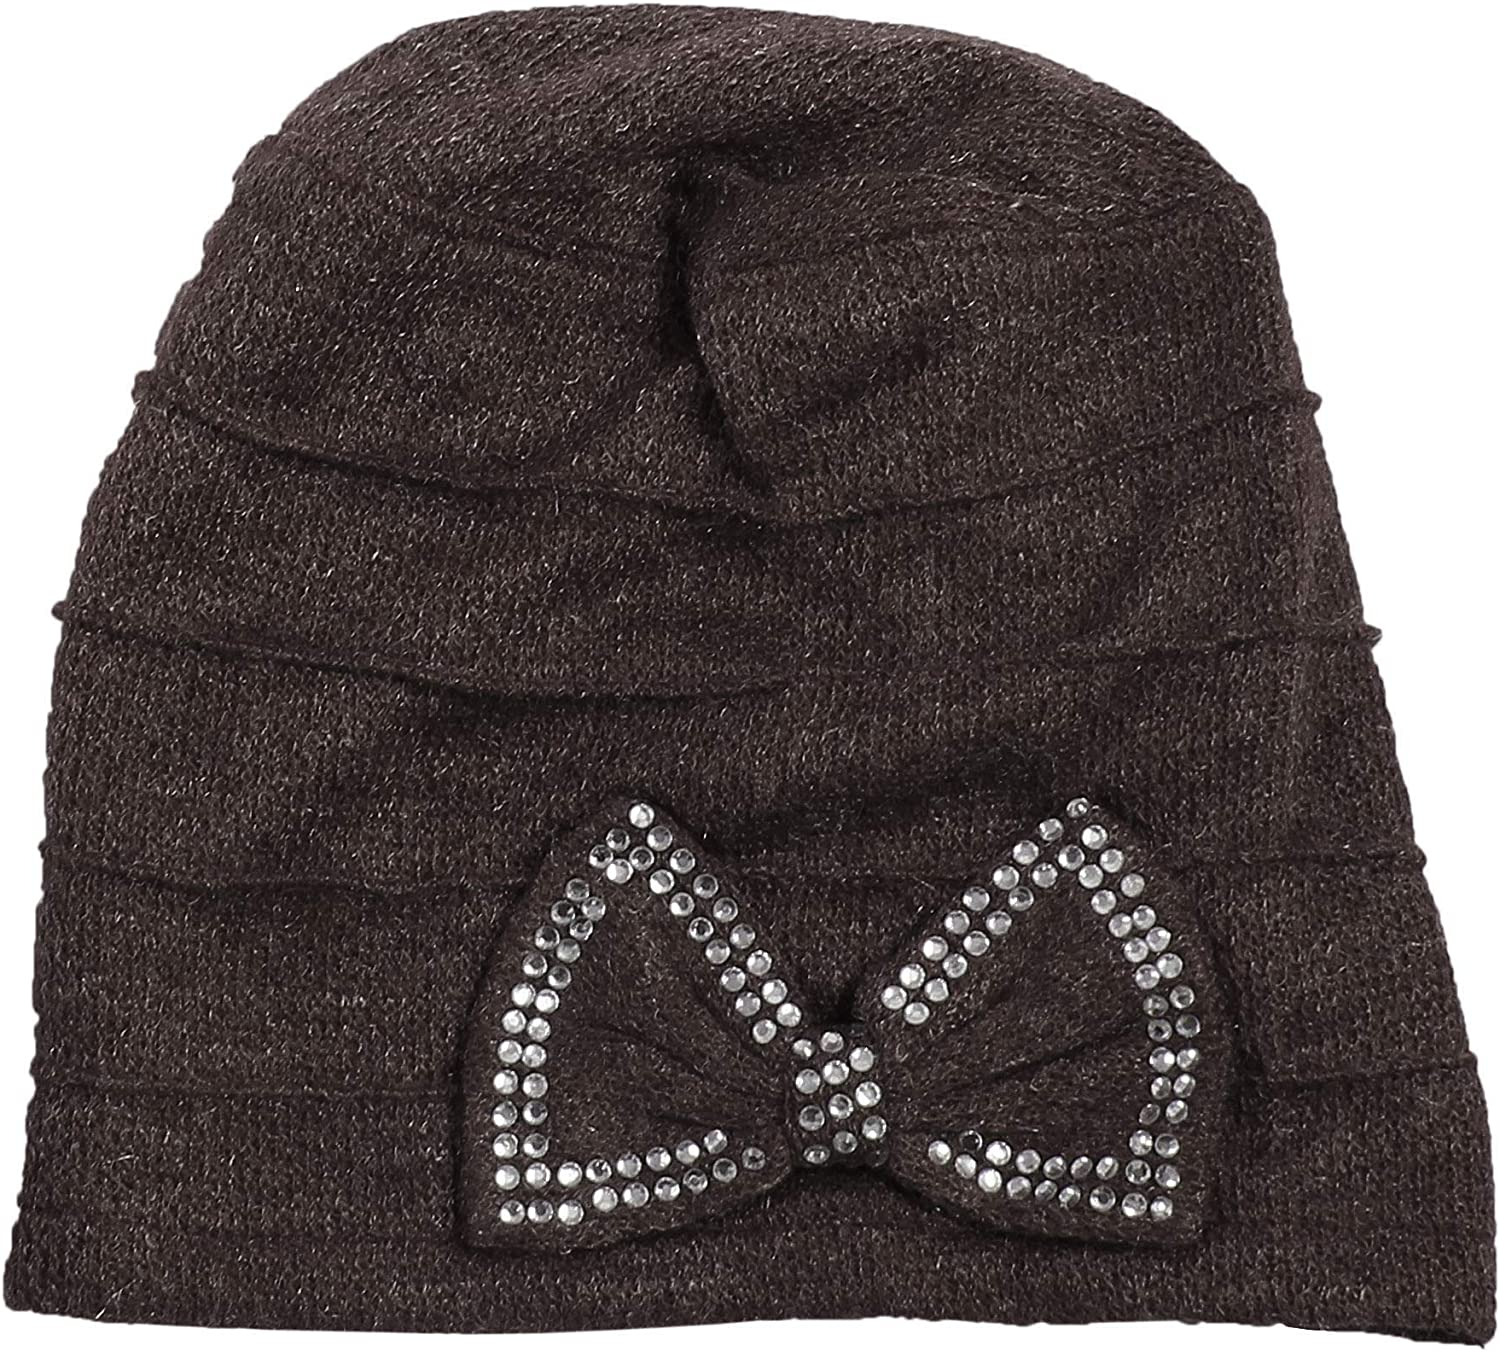 Morehats Slouchy Daily Beanie with Stonned Butterfly Bow